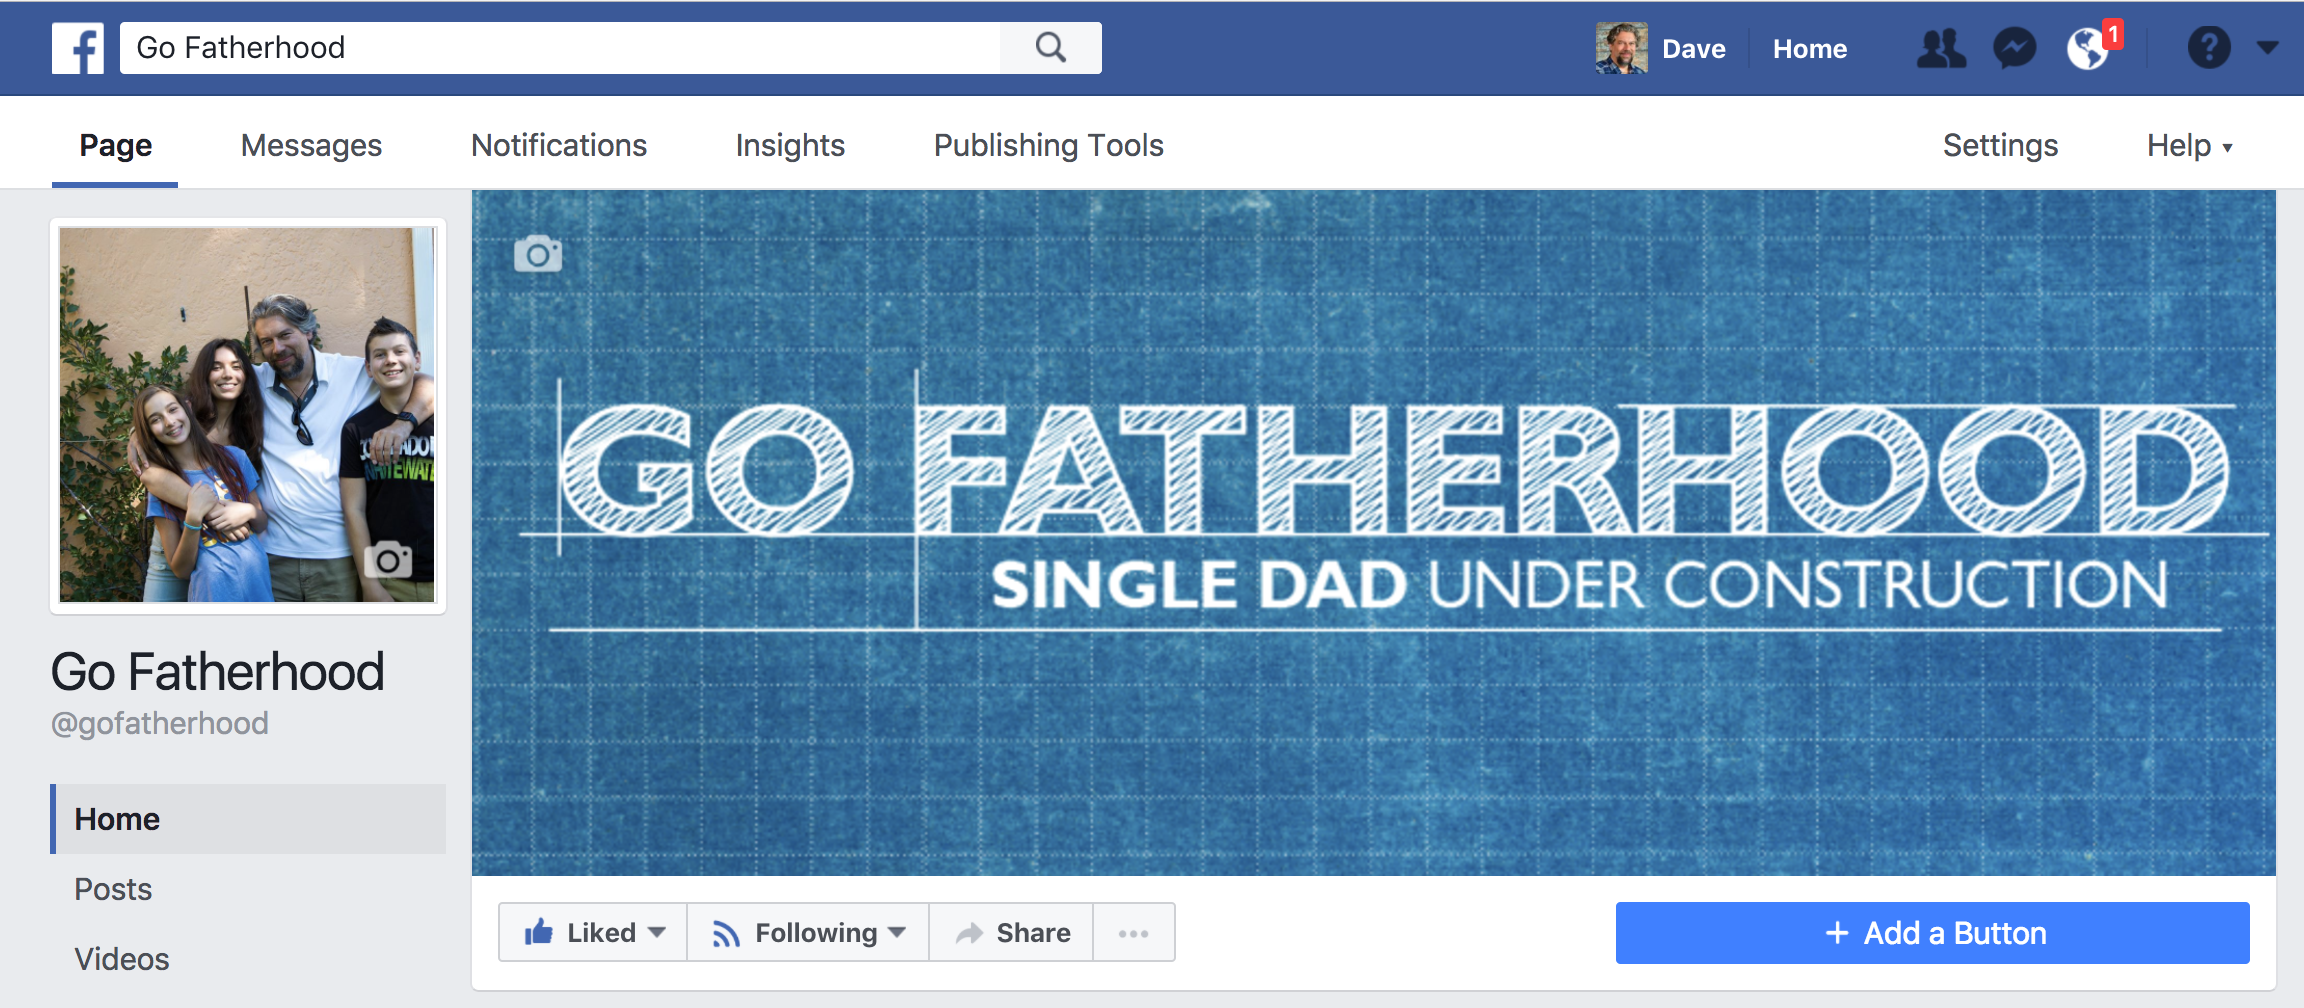 facebook business page gofatherhood top banner